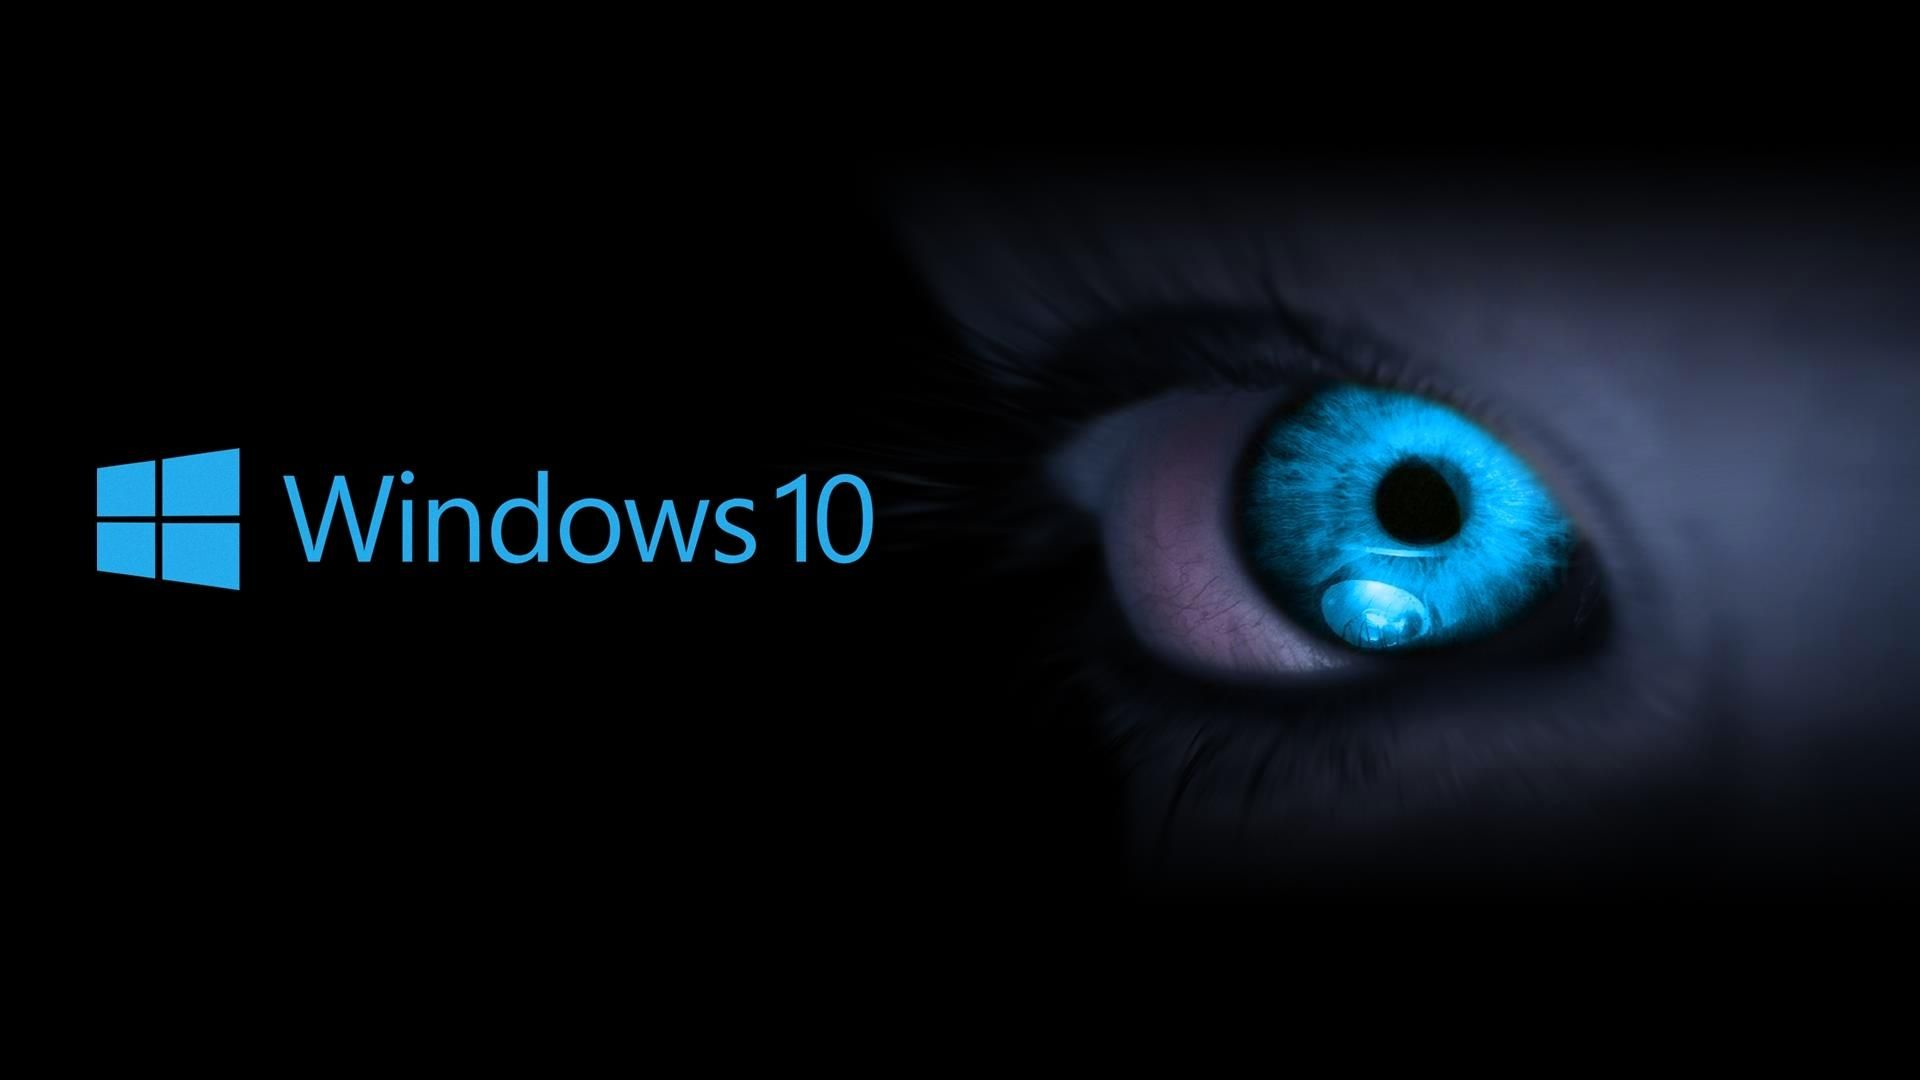 Windows 10 wallpaper hd 3d wallpapers wide for hd for Window 3d wallpaper